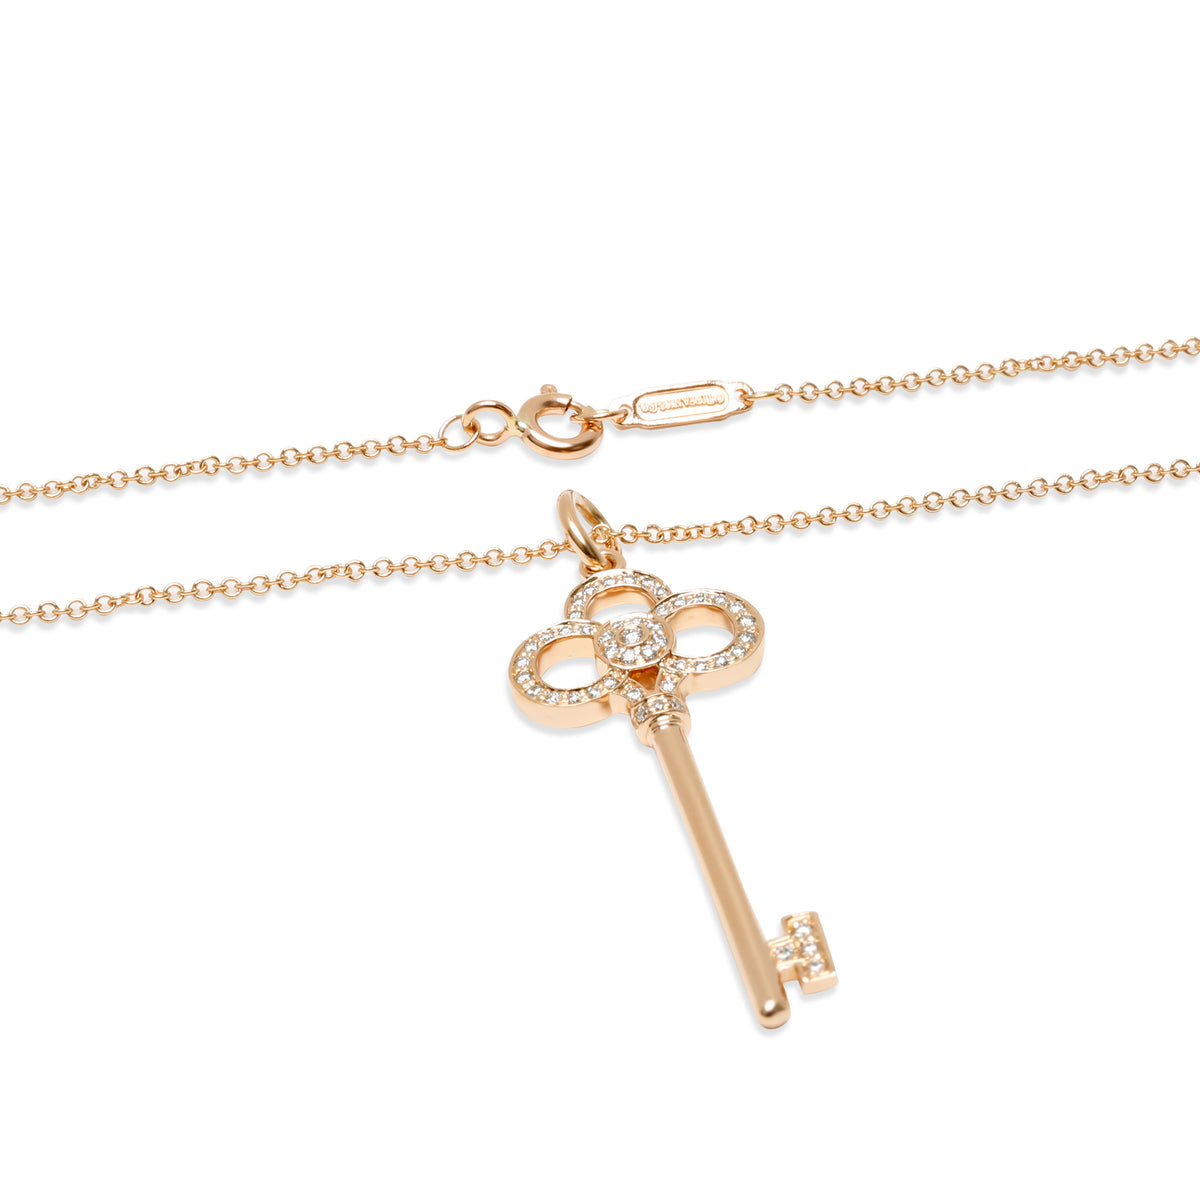 Tiffany & Co. Crown Key Diamond Pendant in 18KT Rose Gold 0.13 CTW